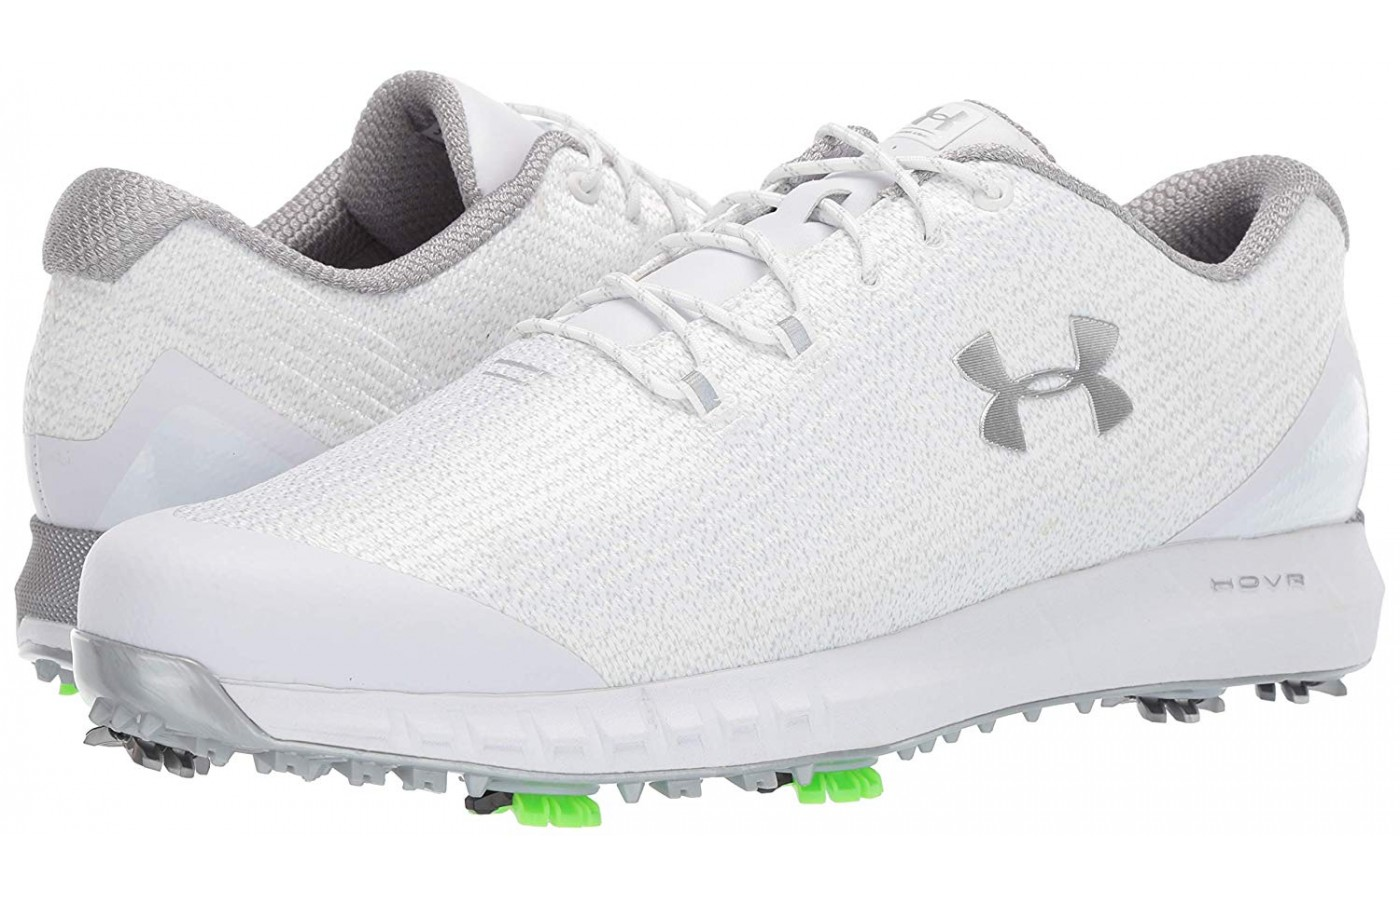 Under Armour HOVR Drive Woven pair